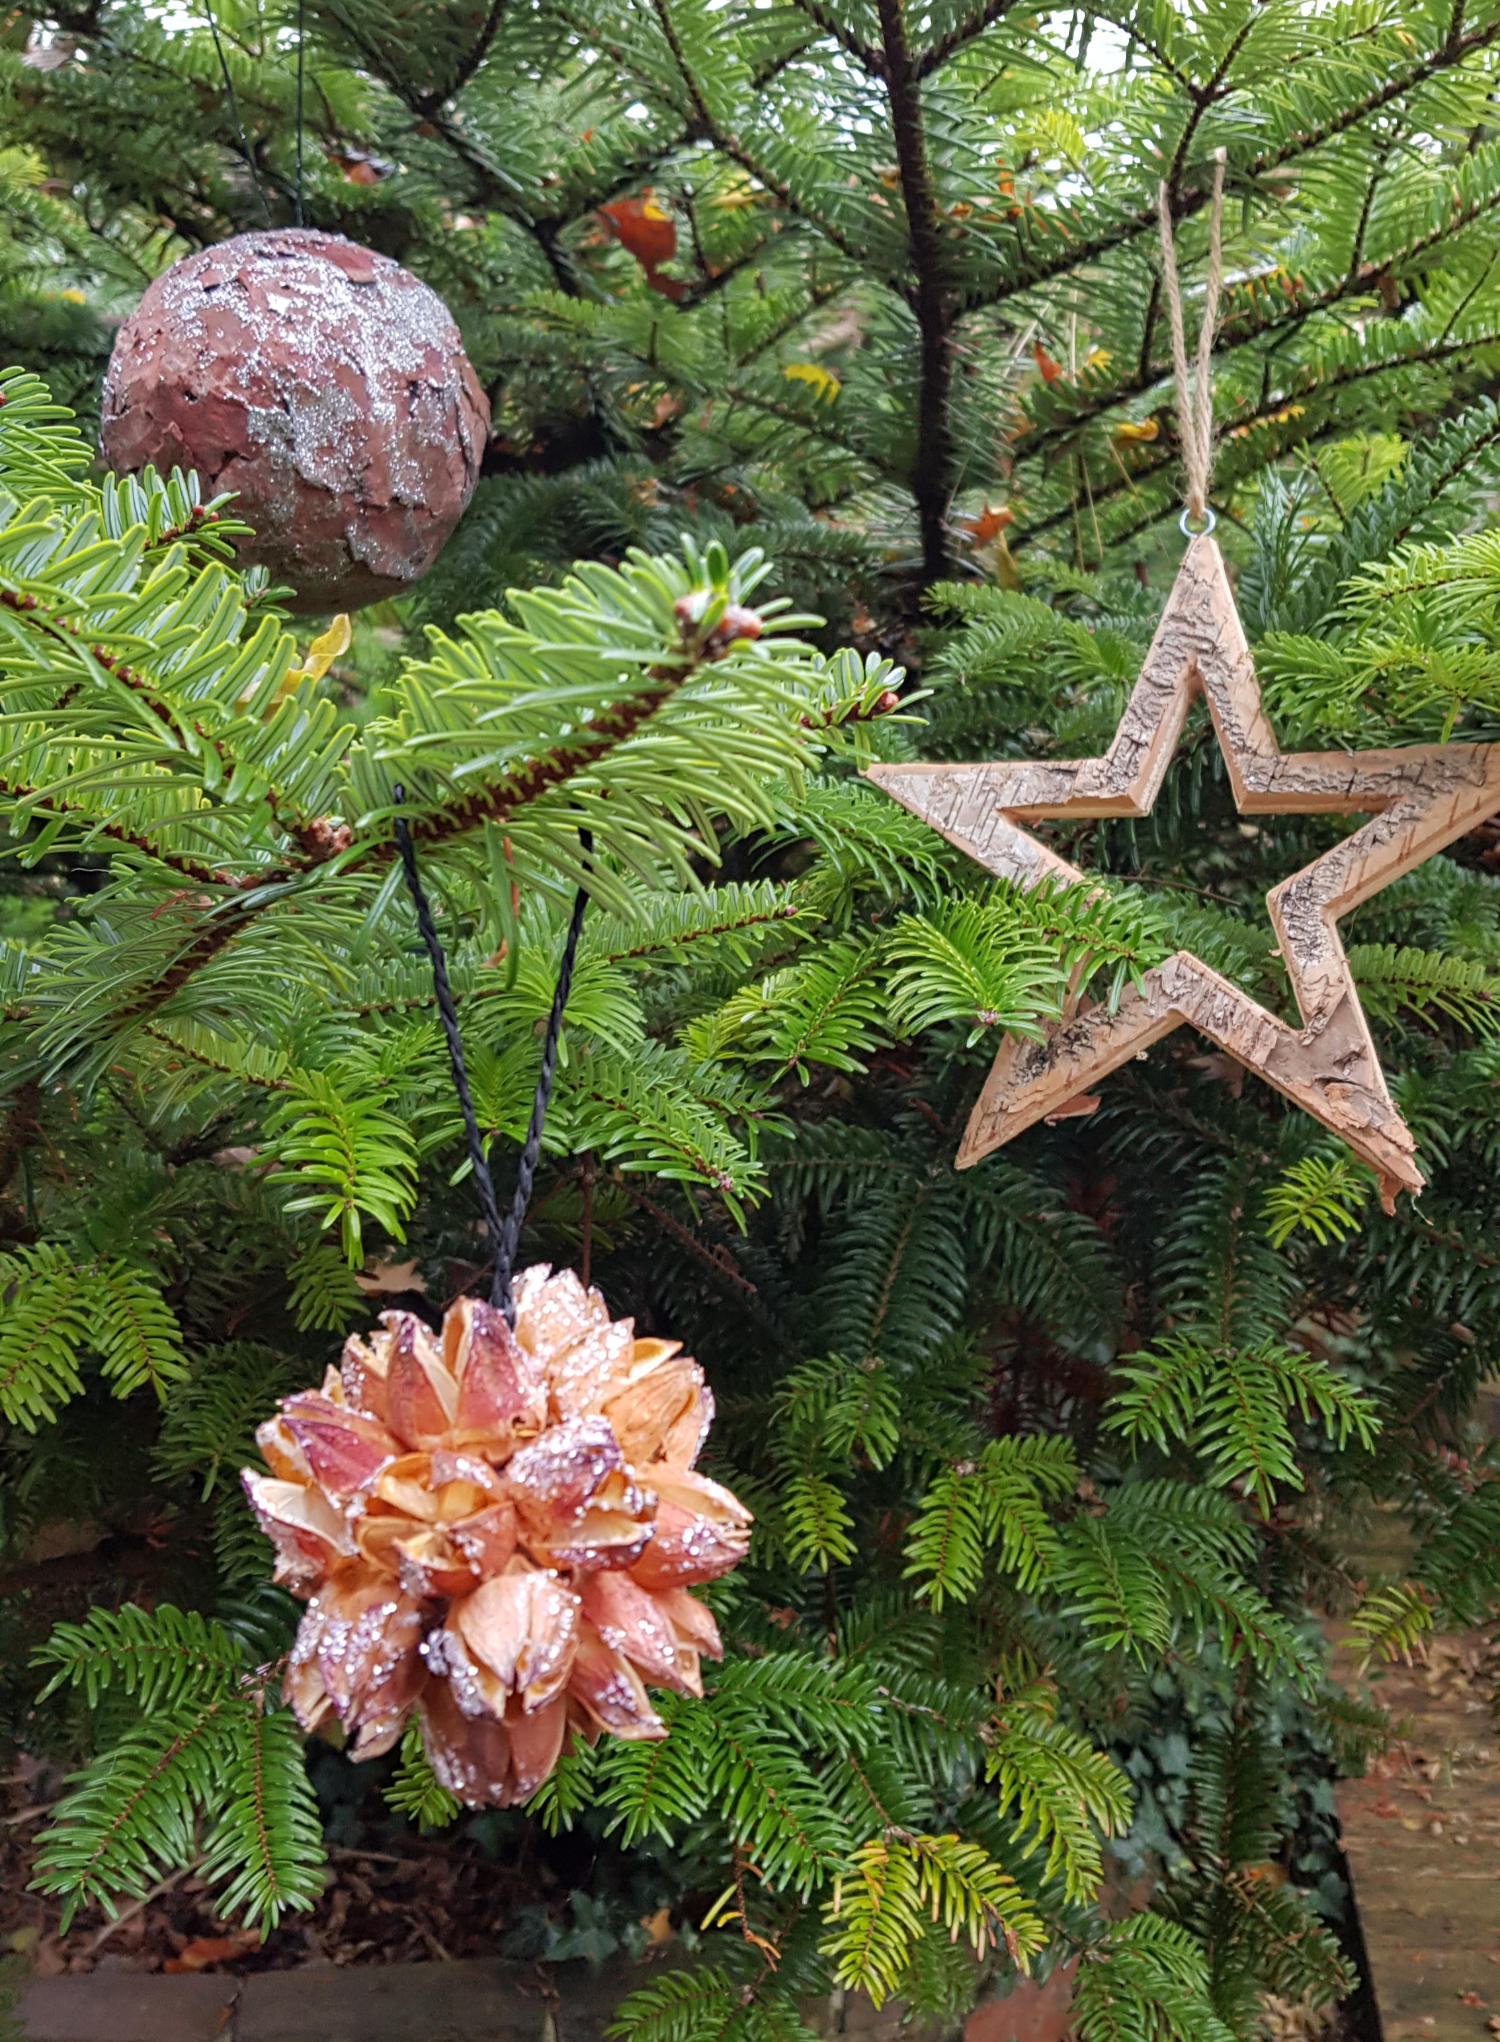 Natural, rustic bark decorations on the Christmas tree.